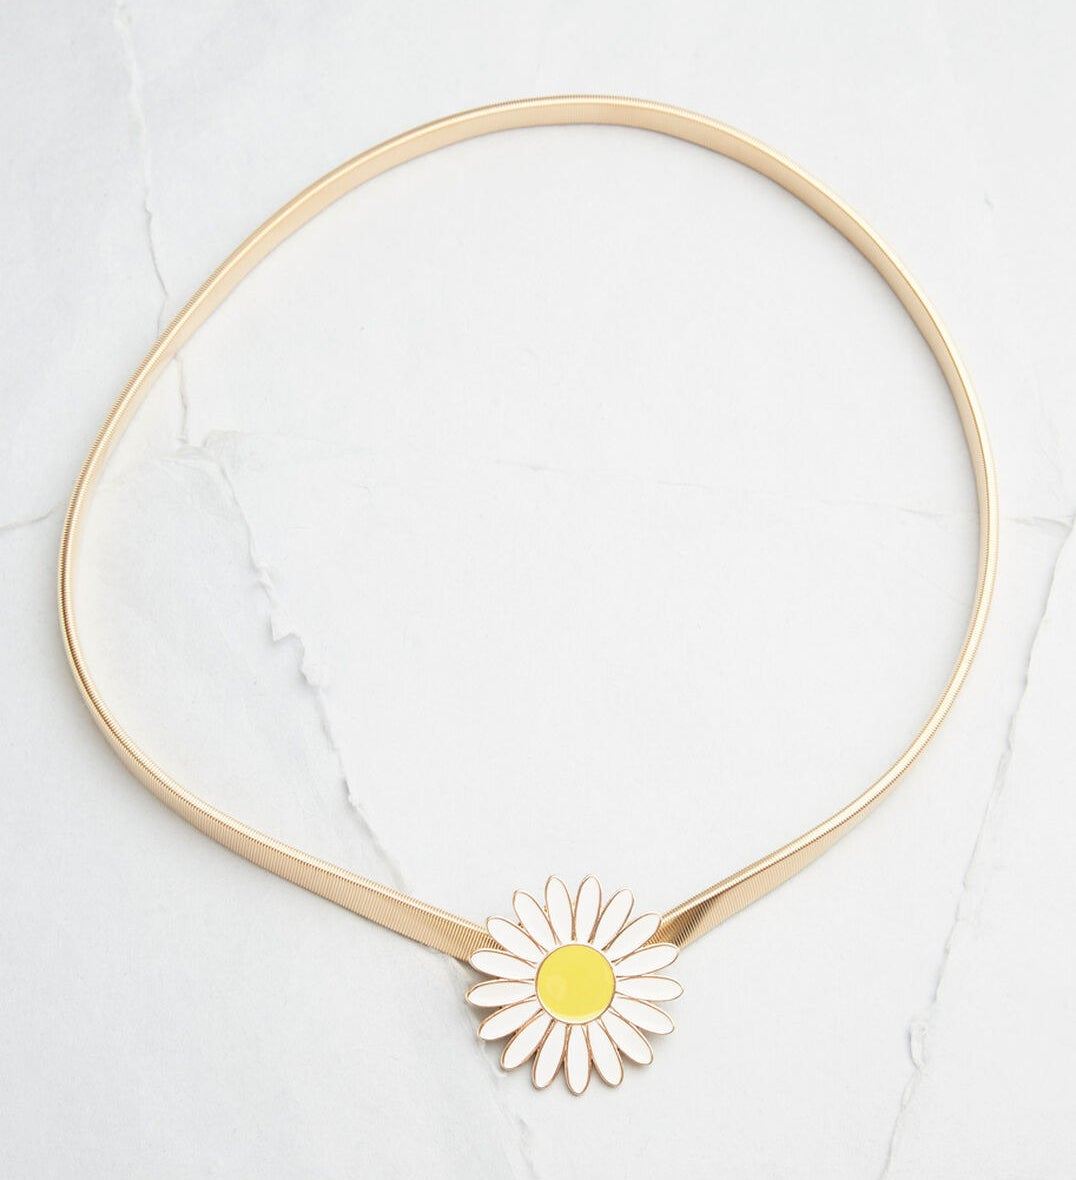 Gold belt with a white daisy with yellow center